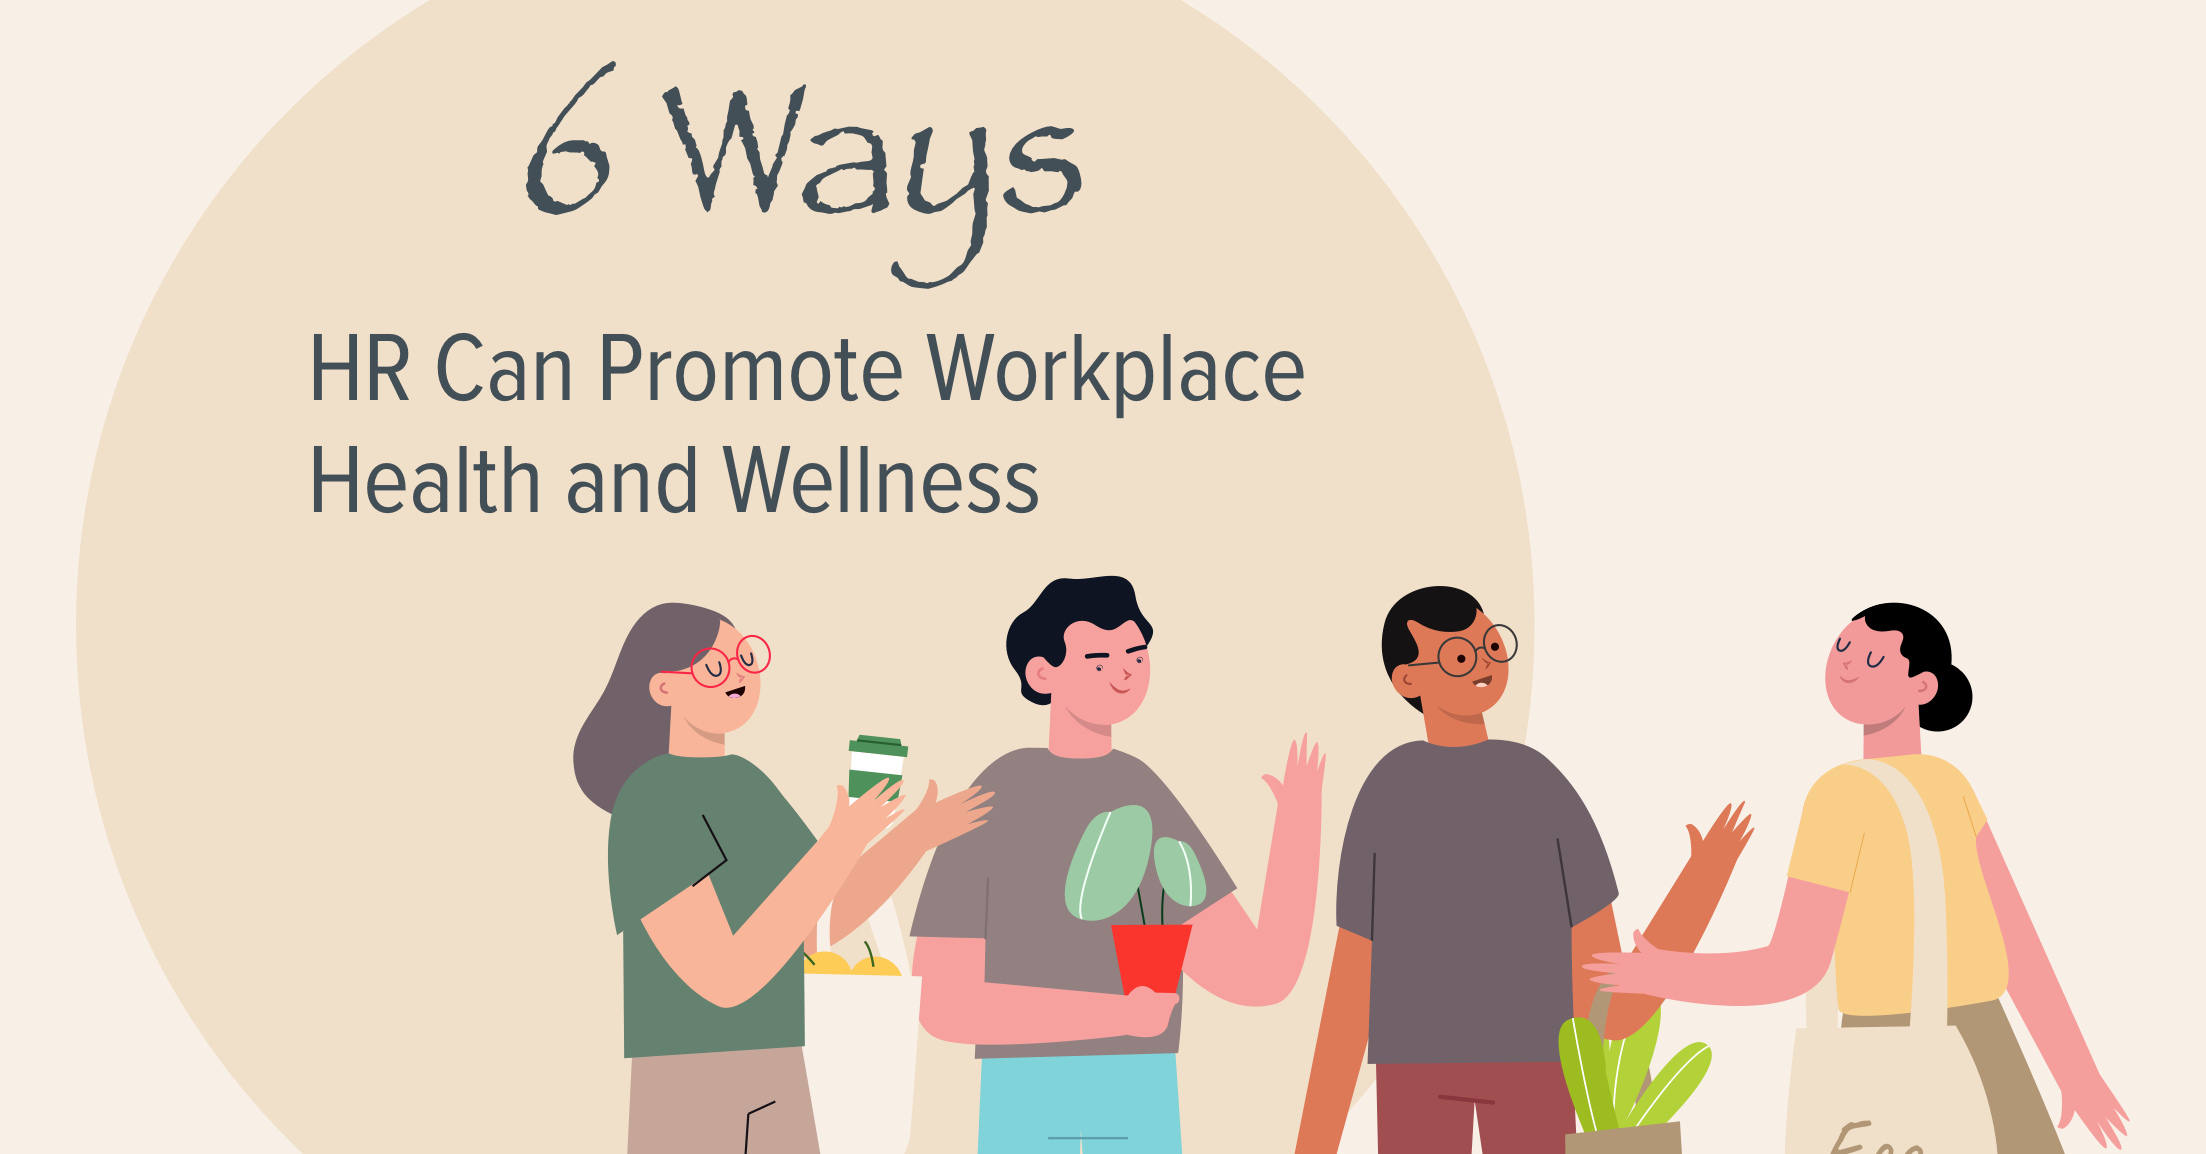 6 Ways HR Can Promote Workplace Health and Wellness